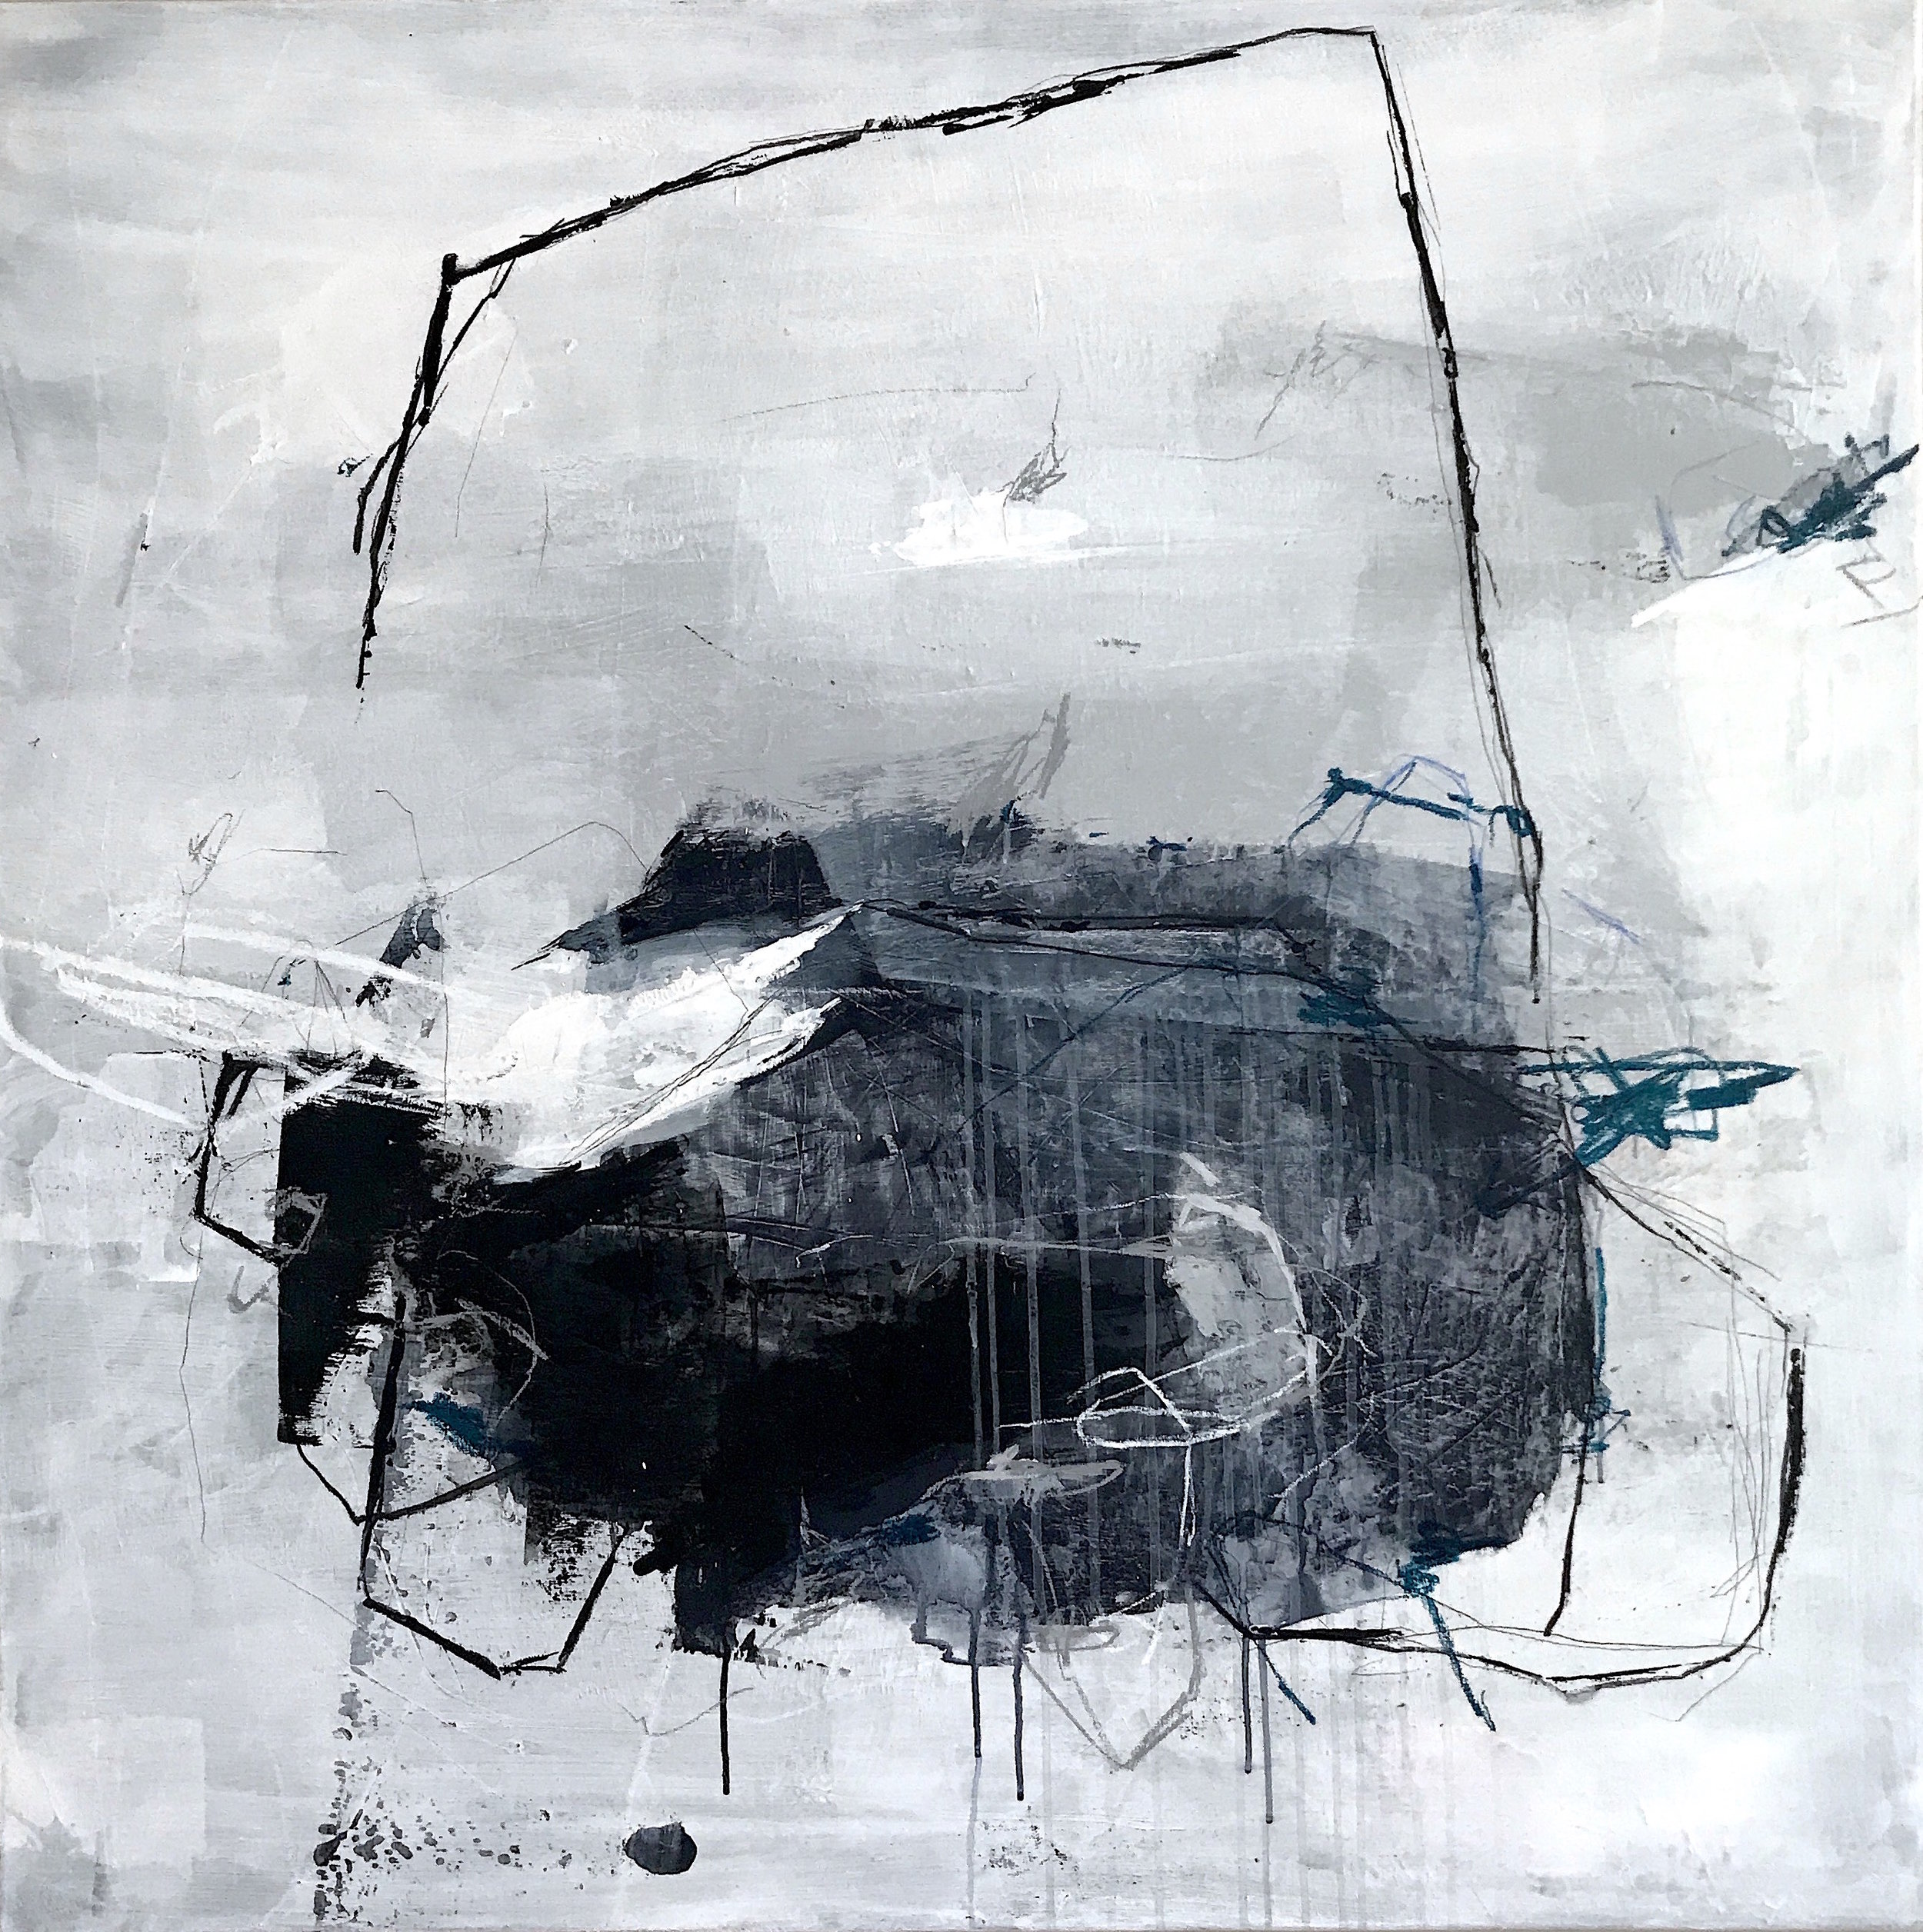 Painting No 3606, acrylic, charcoal, pastels on stretched canvas, 100x100cm, 2018